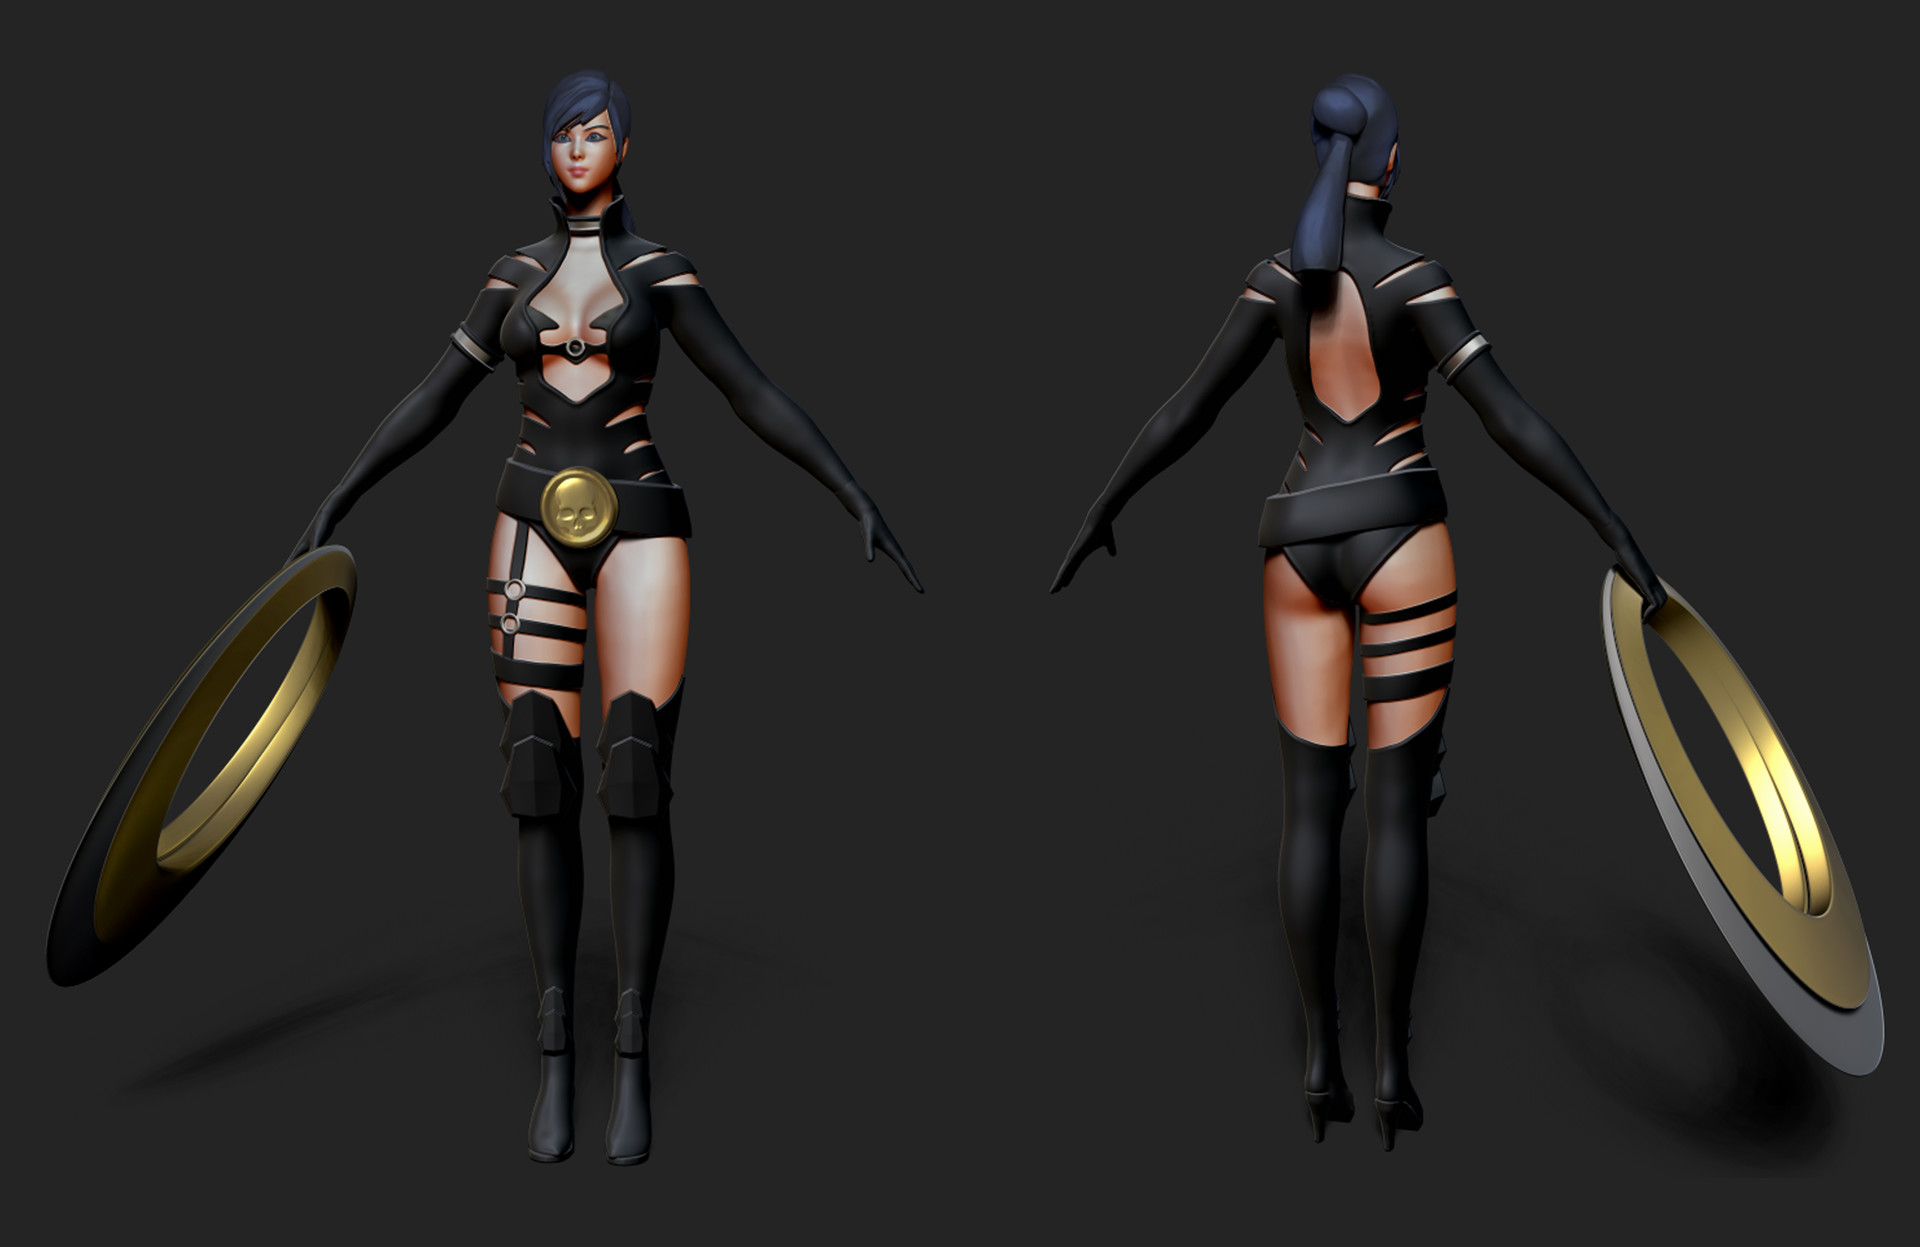 Koray Saldere Black Desert Online Global Costume Design Contest 2018 Kunoichi Costume